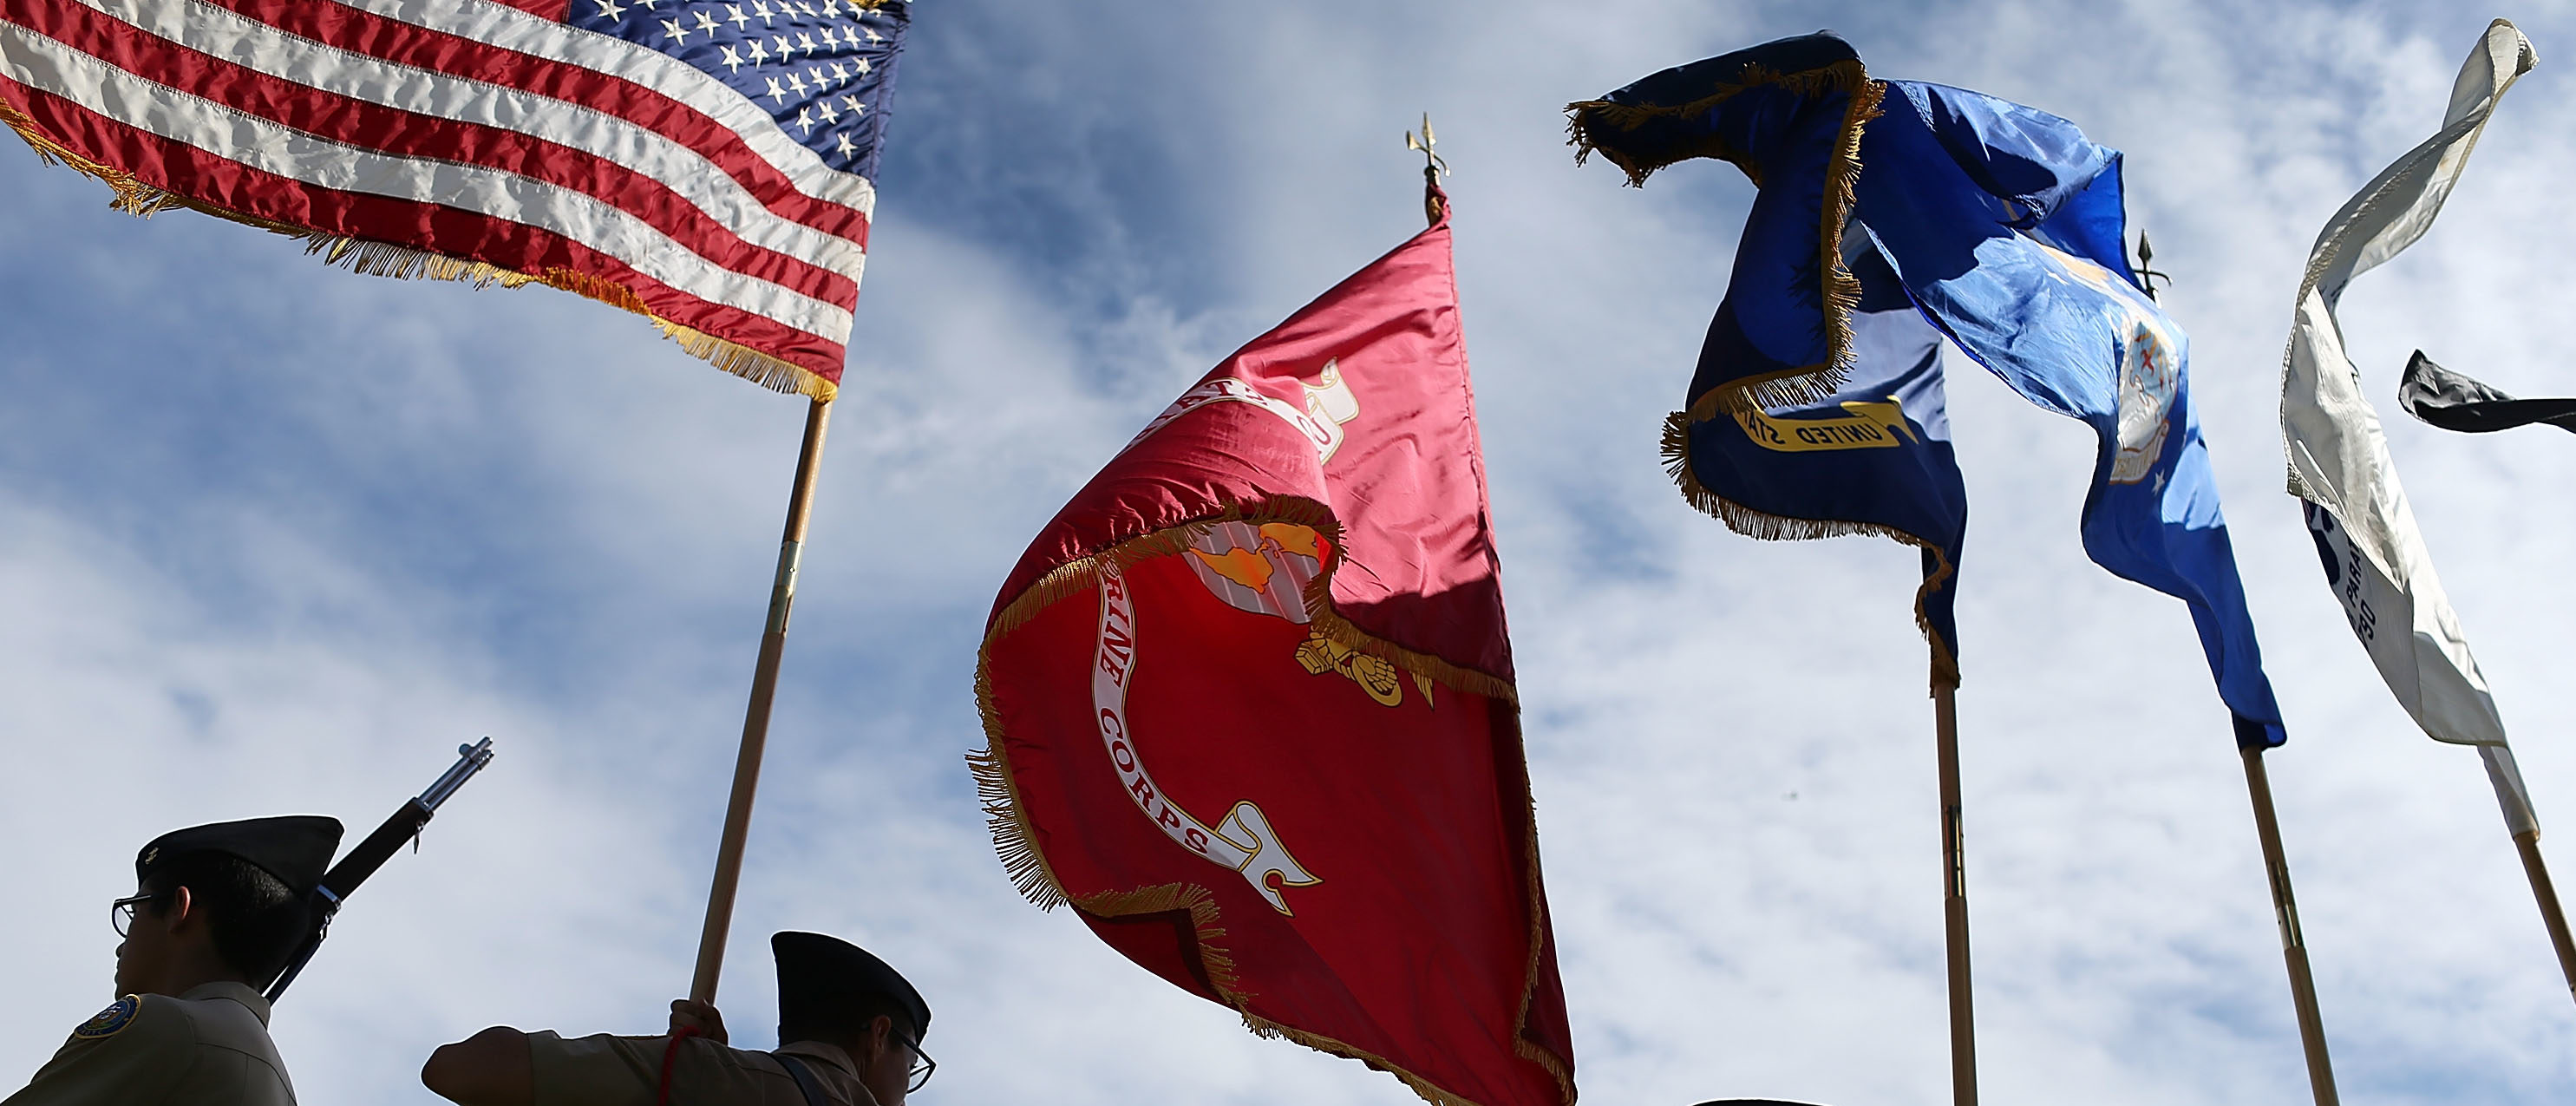 MIAMI BEACH, FL - NOVEMBER 11: Members of the G. Holmes Braddock Senior High School NJROTC color guard carry their flags during a Veterans day ceremony on November 11, 2015 in Miami Beach, Florida. Originally established as Armistice Day in 1919, the holiday was renamed Veterans Day in 1954 by President Dwight Eisenhower, and honors those who have served in the U.S. military. (Photo by Joe Raedle/Getty Images)